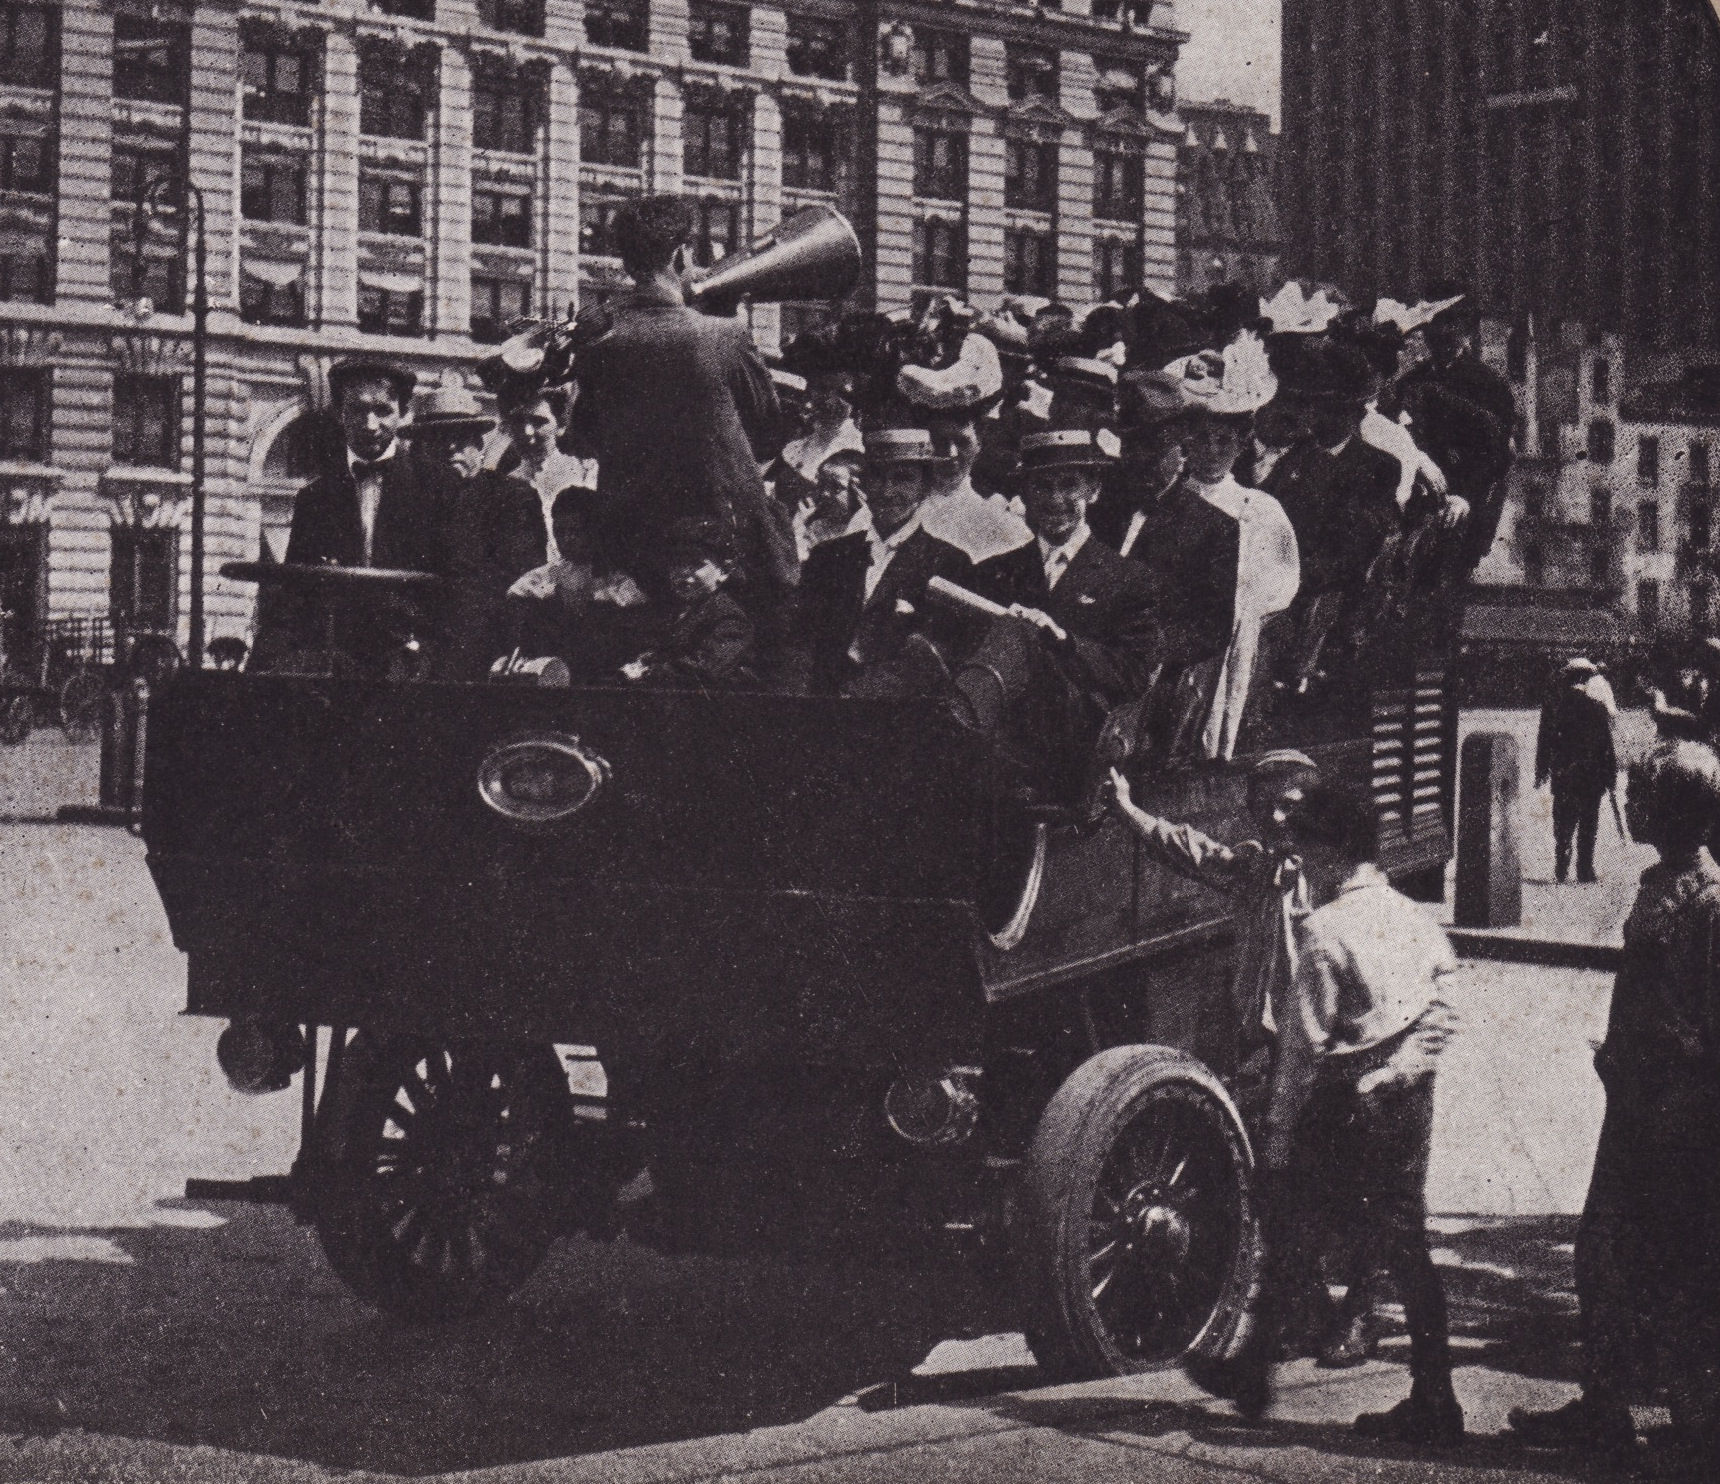 Old New York In Photos #67 – Sightseeing In New York 1906